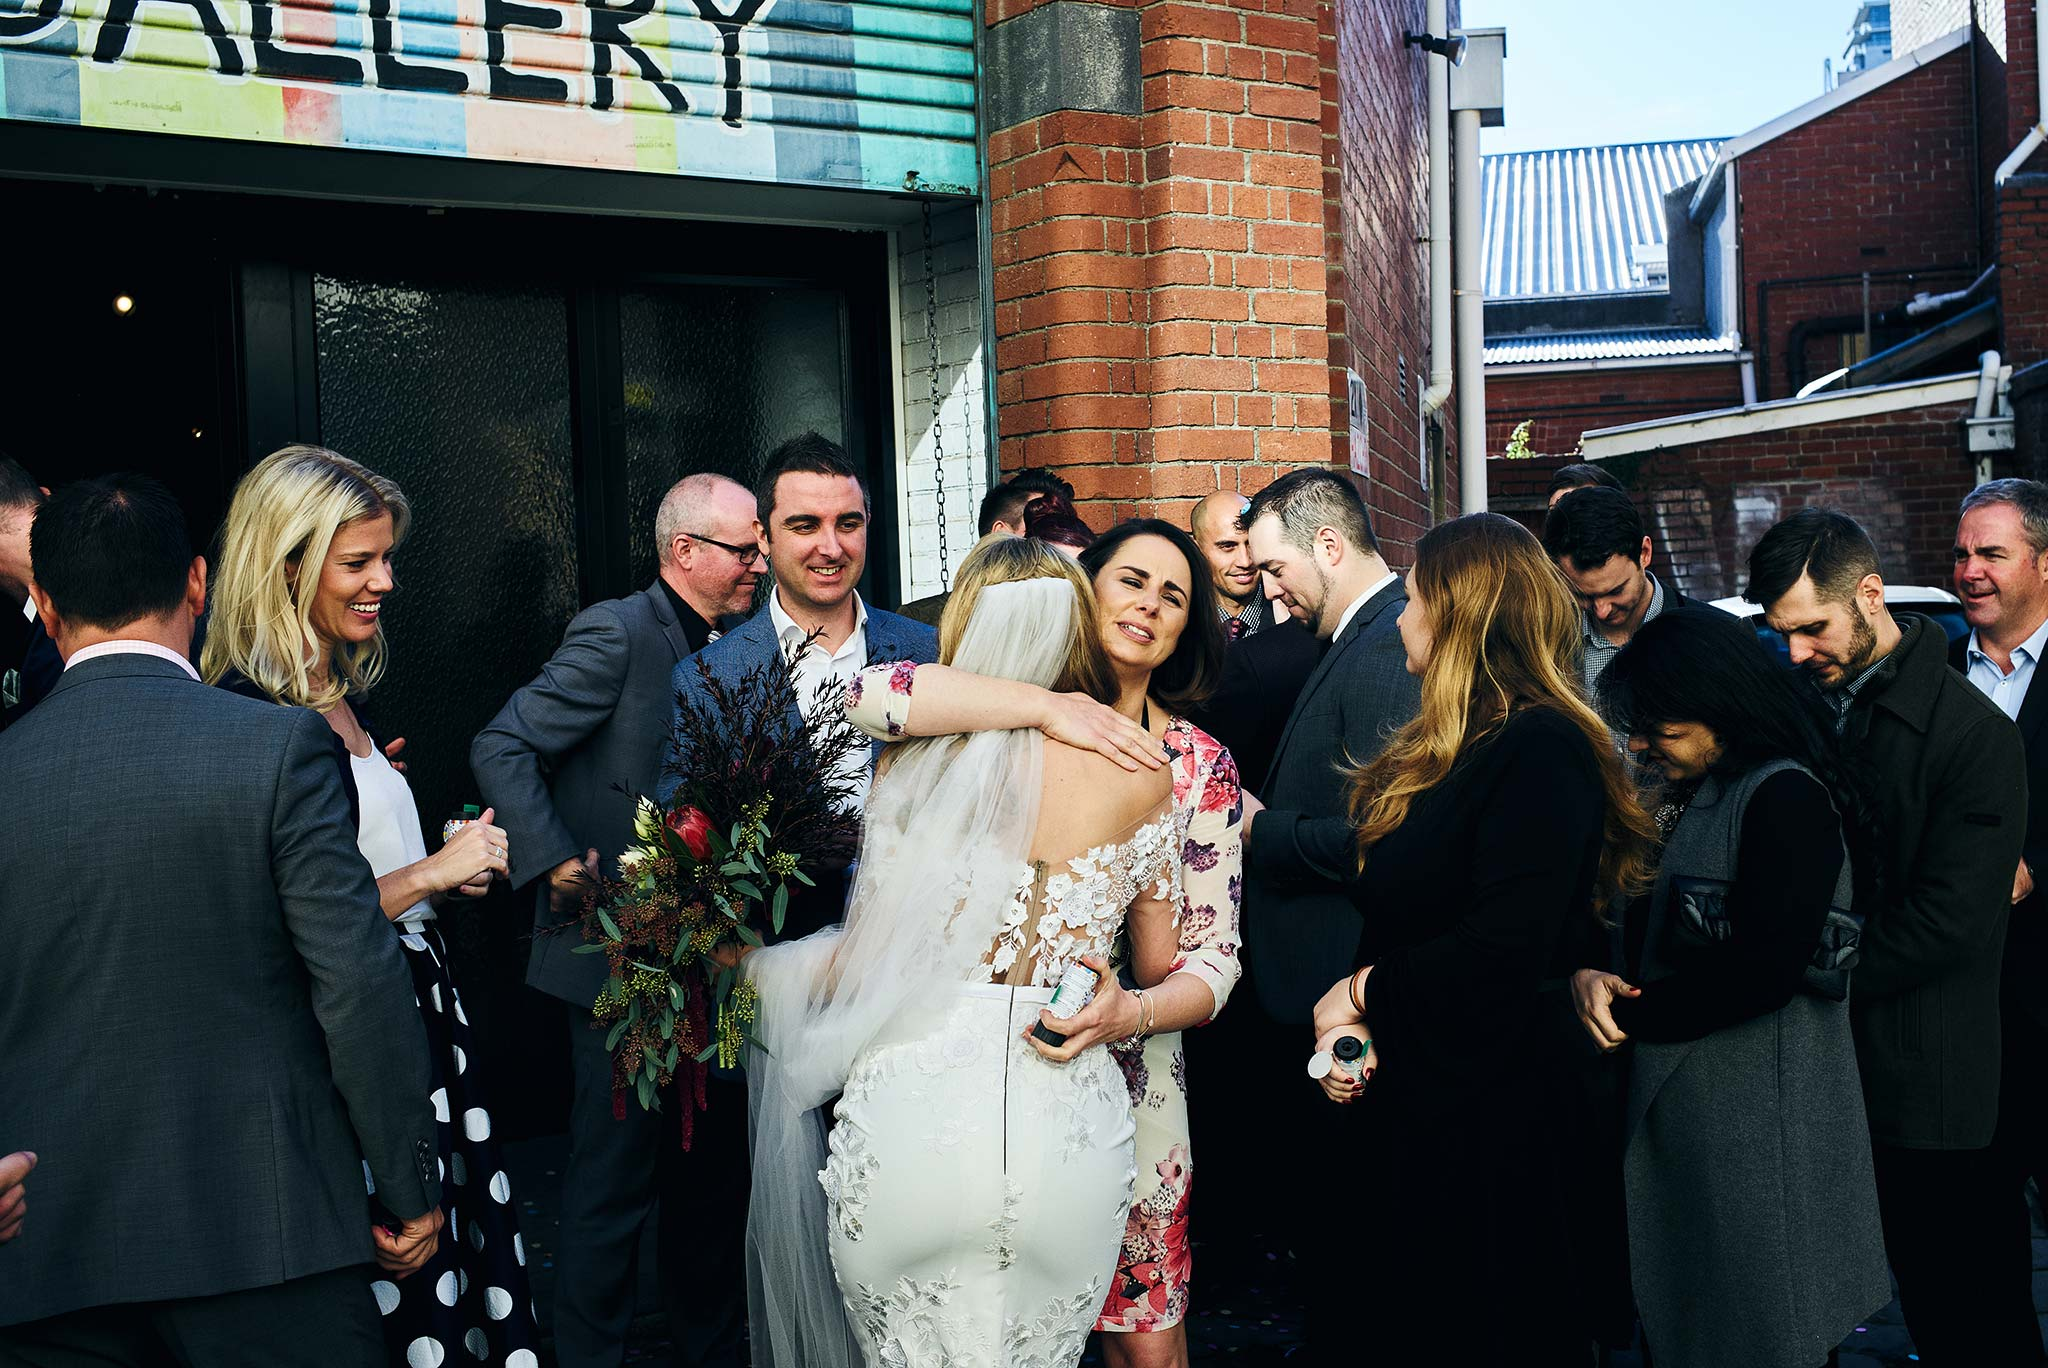 Melbourne-Wedding-Photographer-smartartz-gallery-ceremony-hug